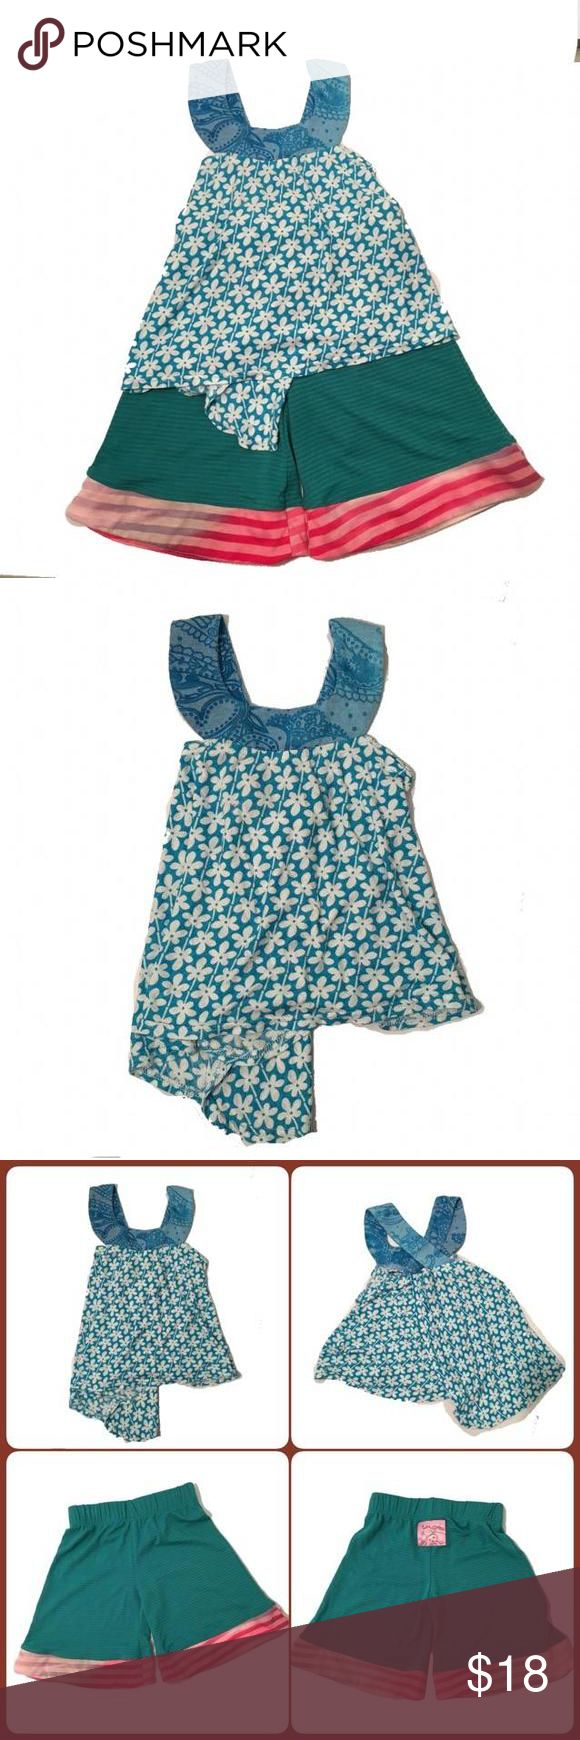 Two piece Halter & palazzo pant set Mix and matched at its best! Teal & white with pinks and turquoise all mixed matched with Halter swing top and cotton palazzo pants. Perfect for hot days! Twirly Girl Matching Sets